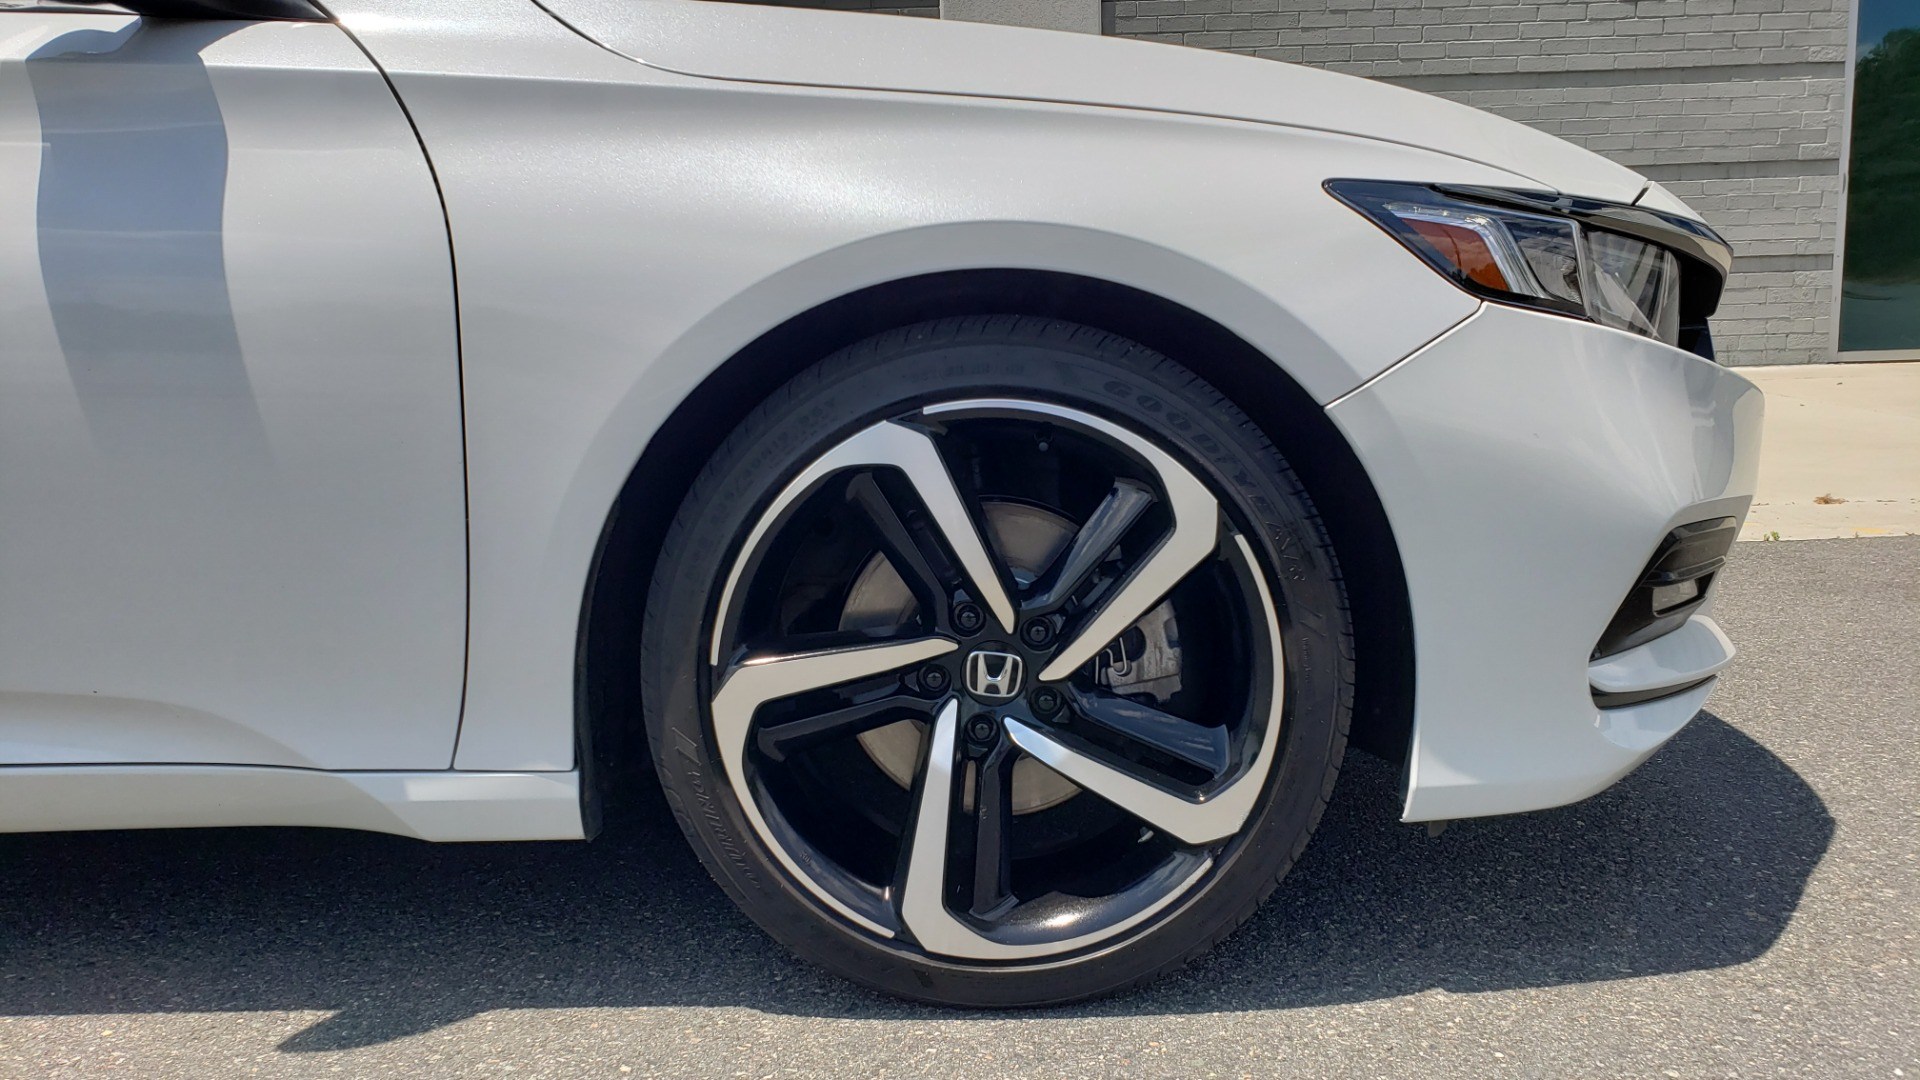 Used 2018 Honda ACCORD SEDAN SPORT 1.5T / CVT TRANS / FWD / 19IN WHEELS for sale $20,995 at Formula Imports in Charlotte NC 28227 69